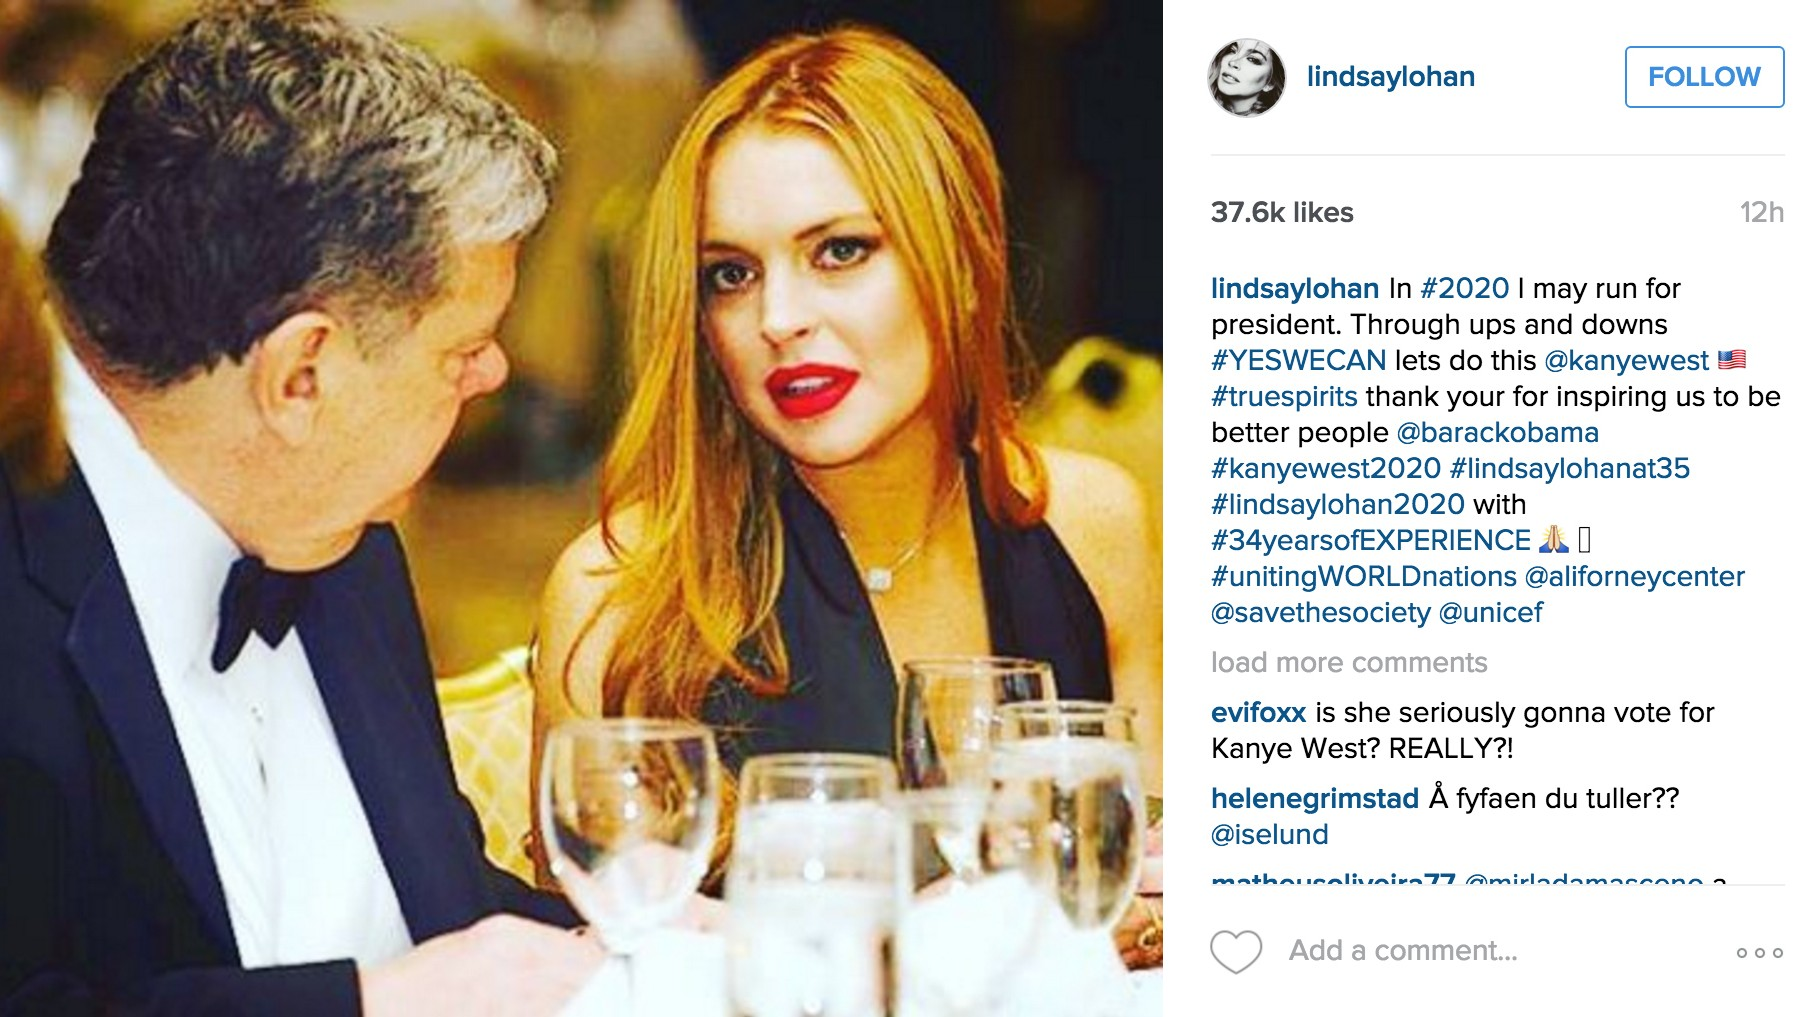 ​lindsay lohan might run for president